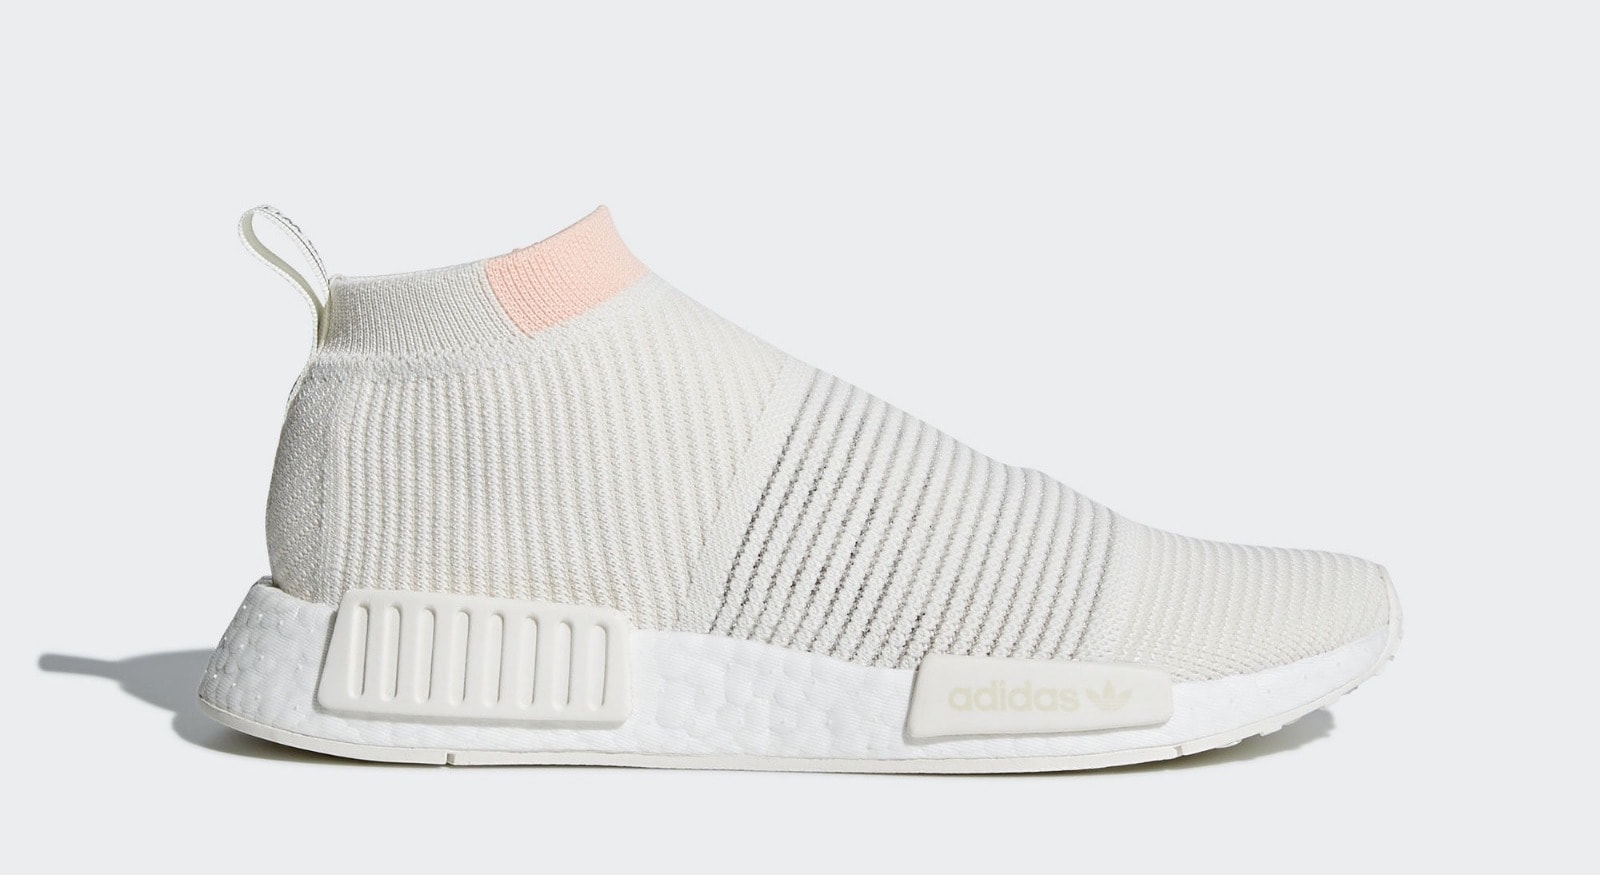 f4337afb1 adidas NMD City Sock 1.5 First Look - JustFreshKicks